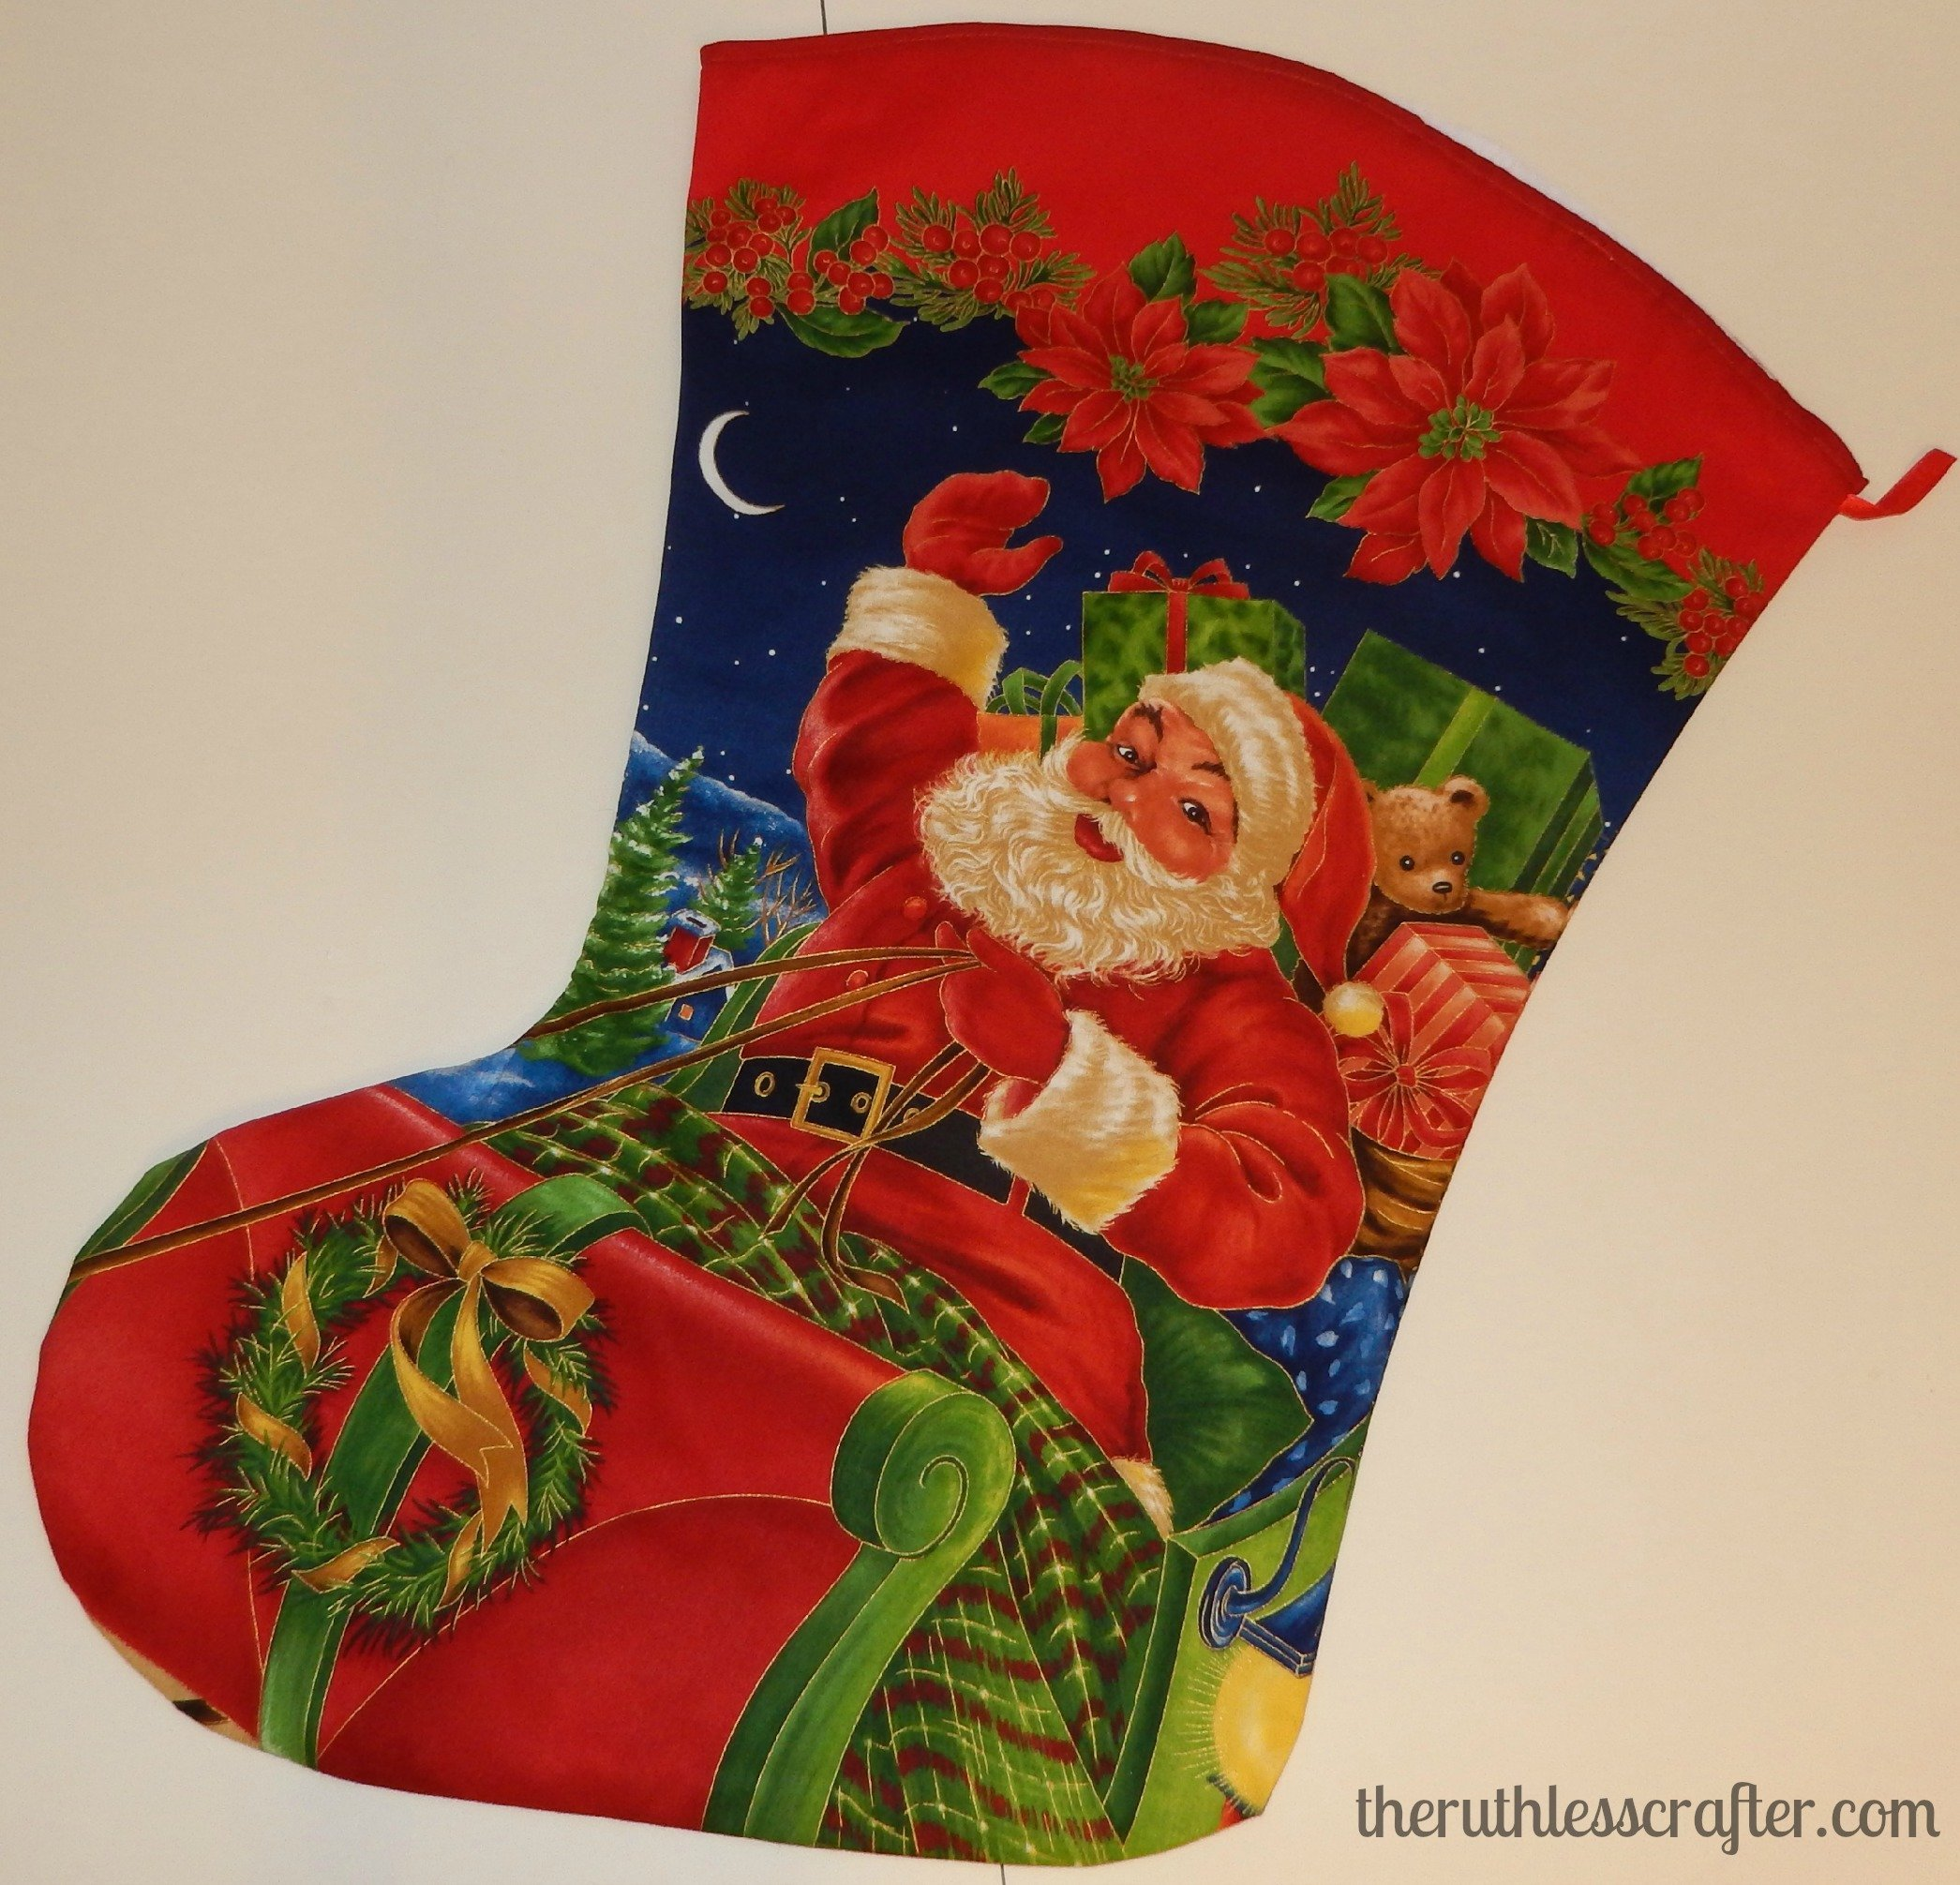 Santa stocking (large). This item is for sale in my Shop.